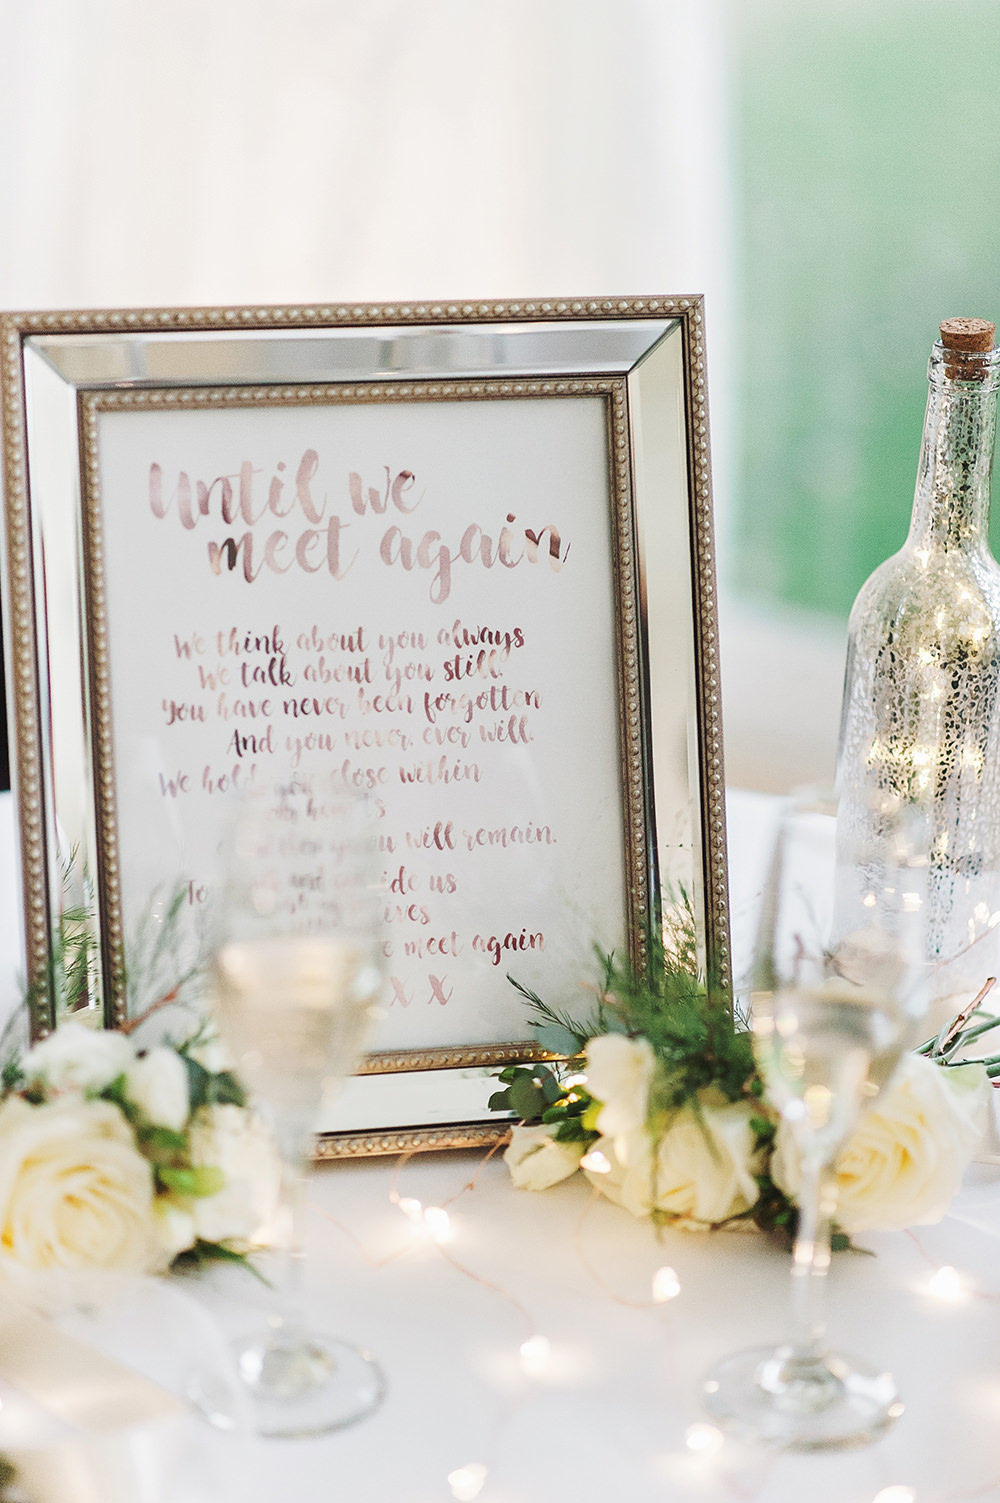 Memory Table Until We Meet Again Frame Edmondsham House Wedding Darima Frampton Photography